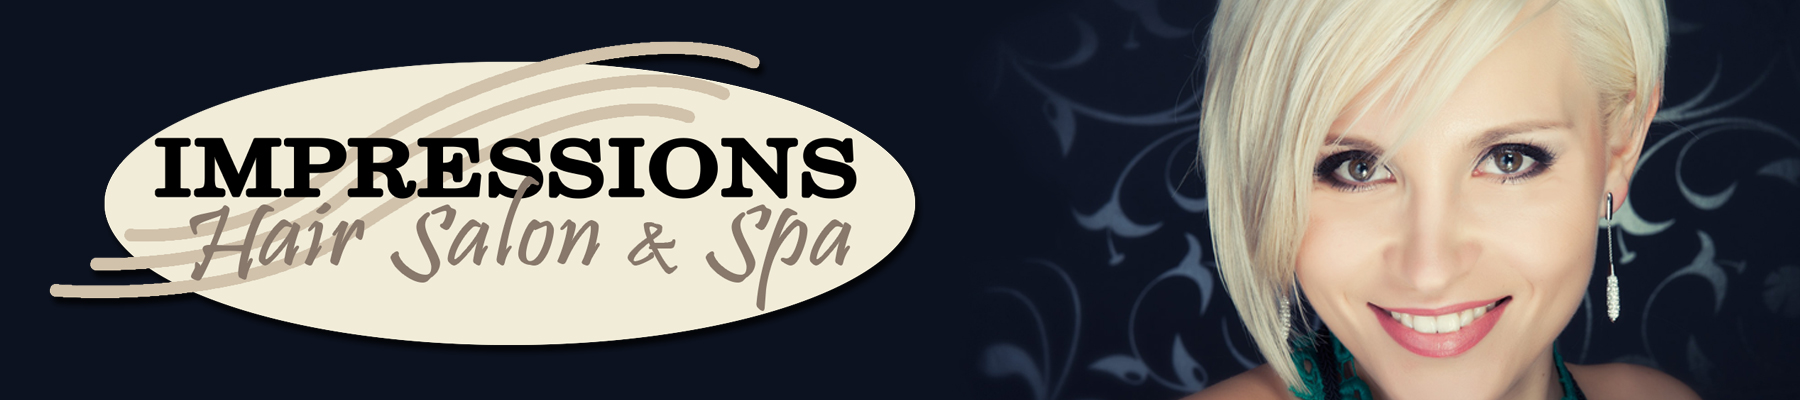 Impressions Hair Salon and Spa. For appointments, call us at 330-345-8824